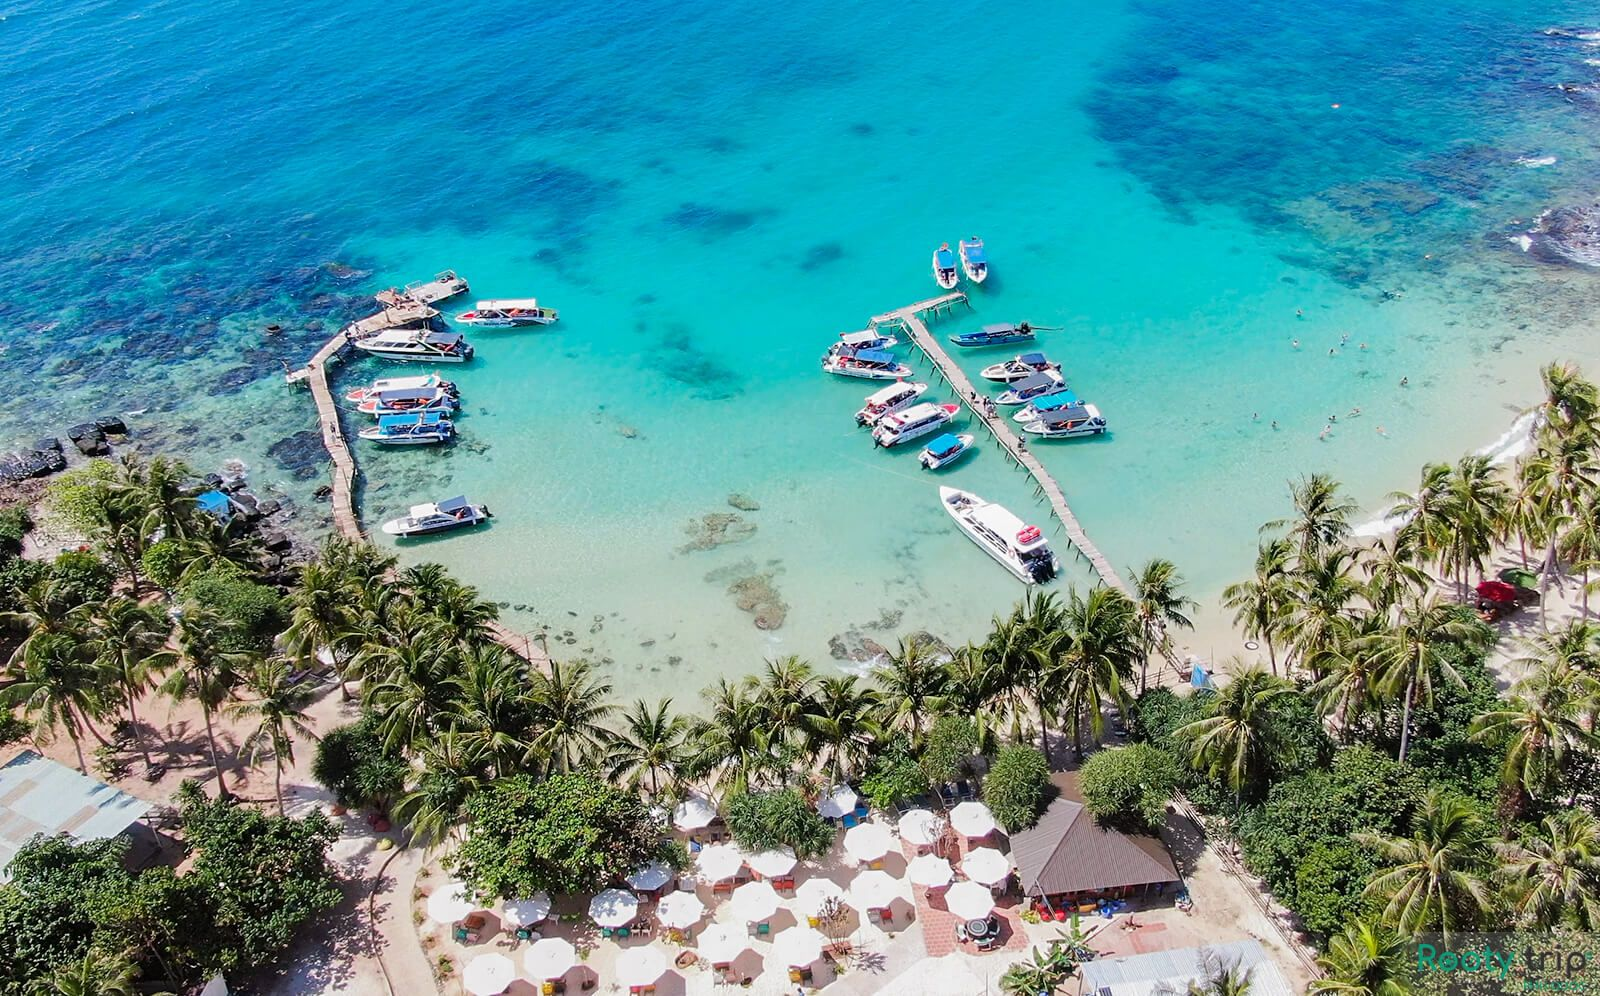 May Rut Island in Phu Quoc – a destination you must visit once in a  lifetime   Fishing tours, Beach at night, Phu quoc